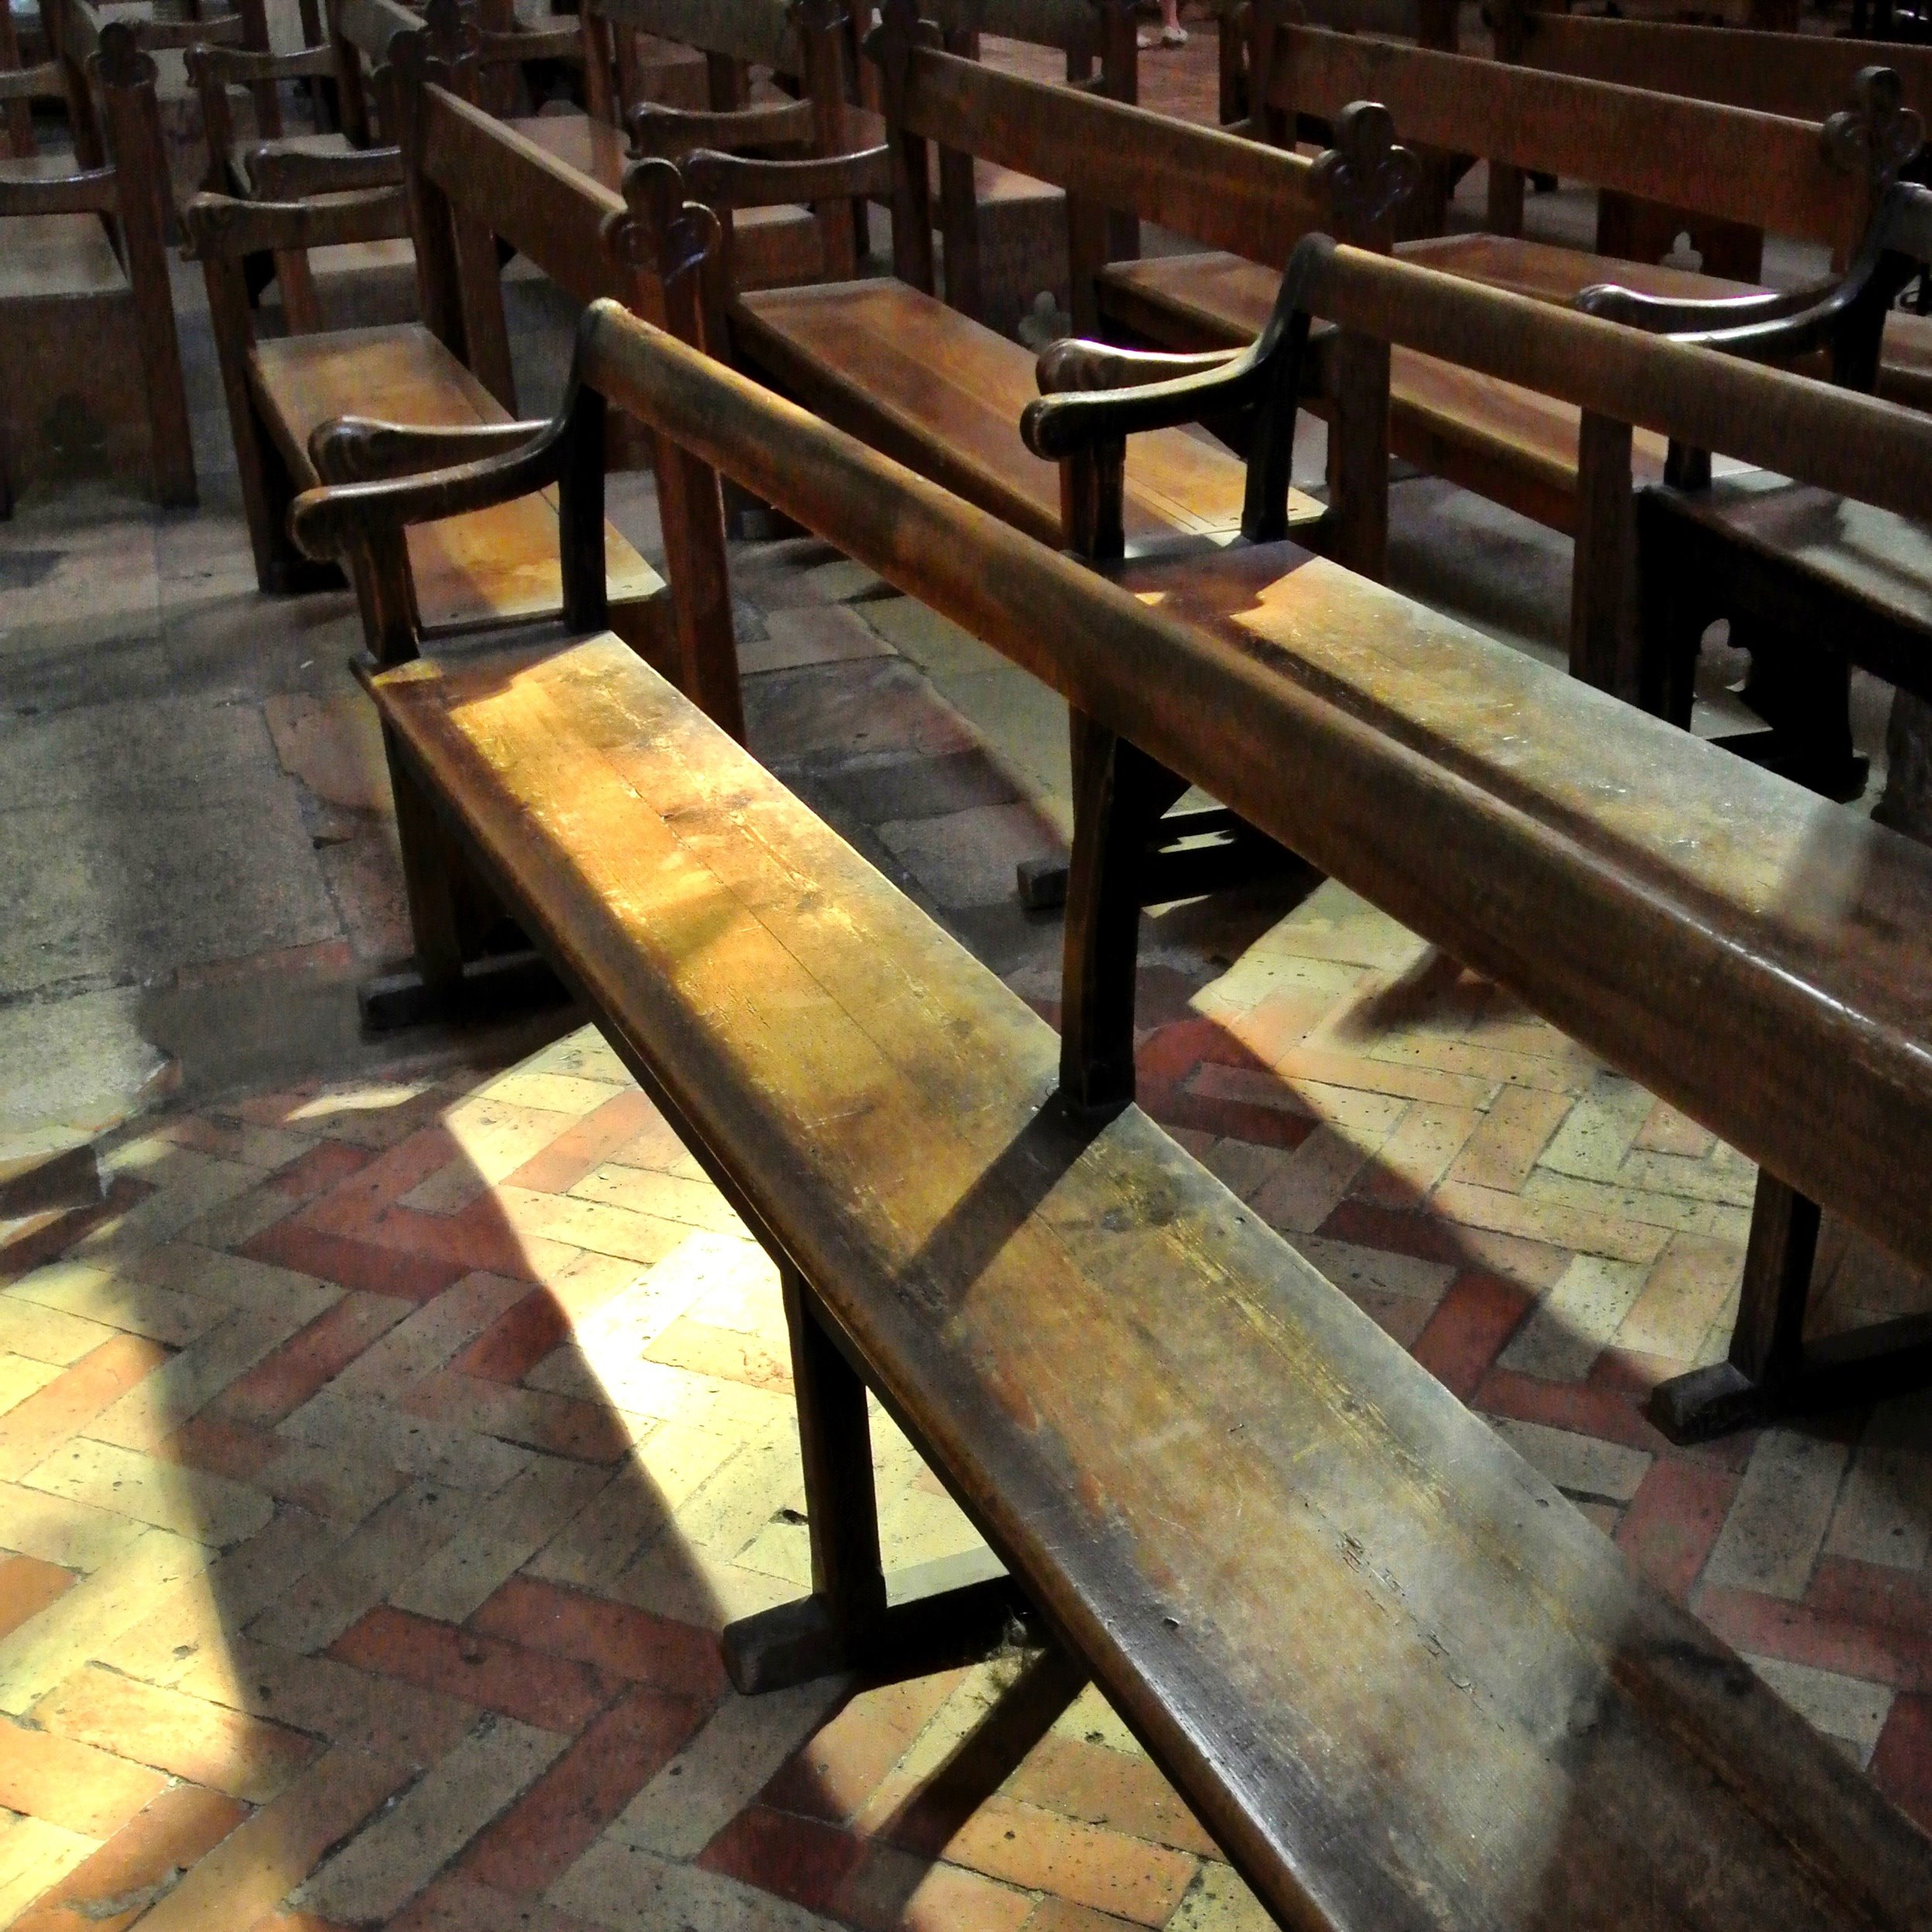 16.  Benched. There is something beautiful in the patina of these benches in Aix Cathedral combined with the well-worn brick floor that has stood the test of time.